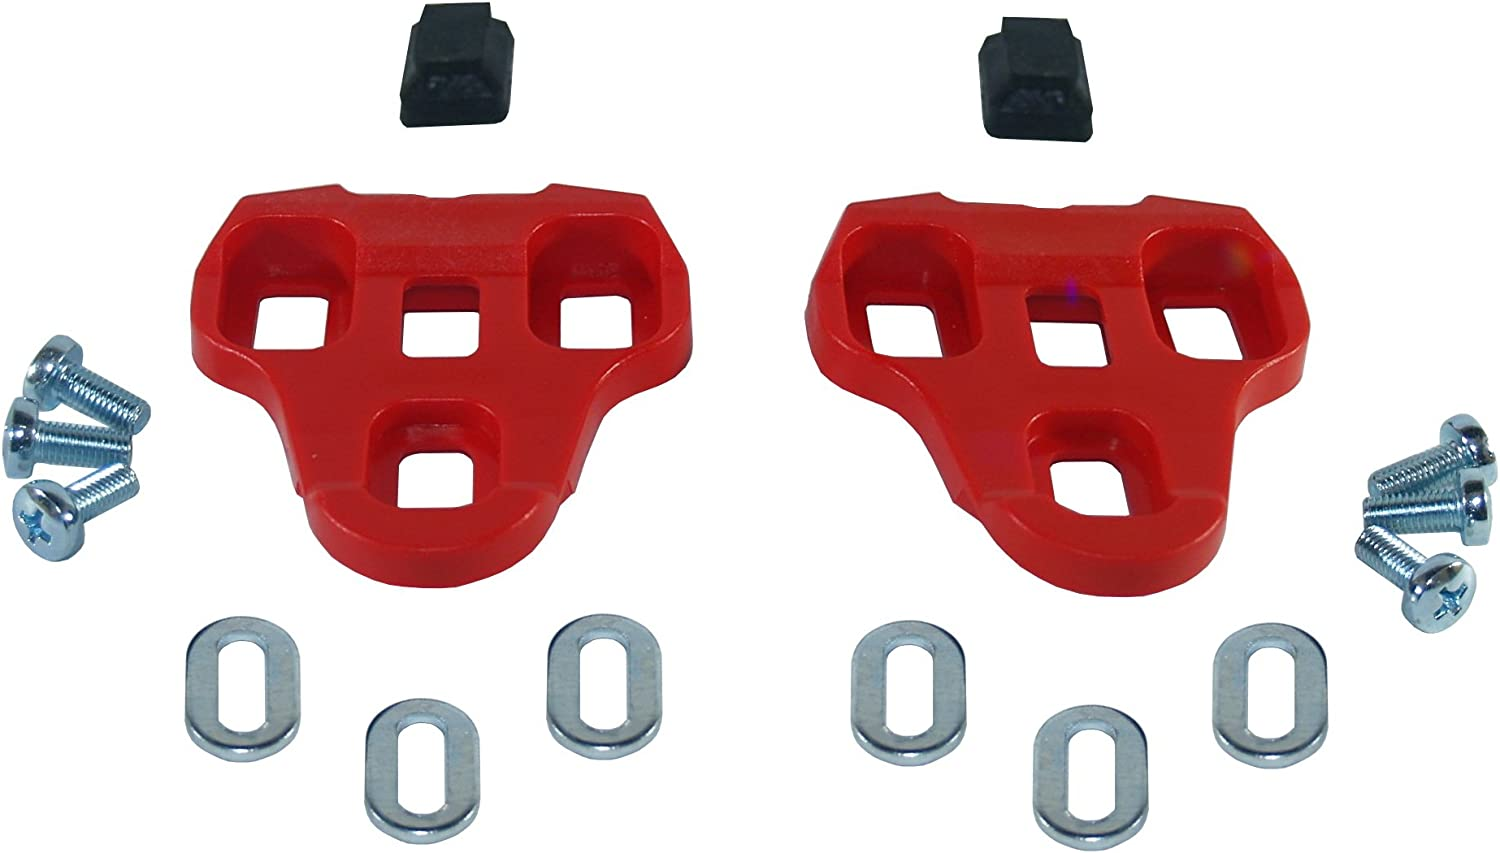 LOOK KEO Compatible Pedal Cleats for Road Bike PLASTIC RED GREY BLACK ROTO MTB